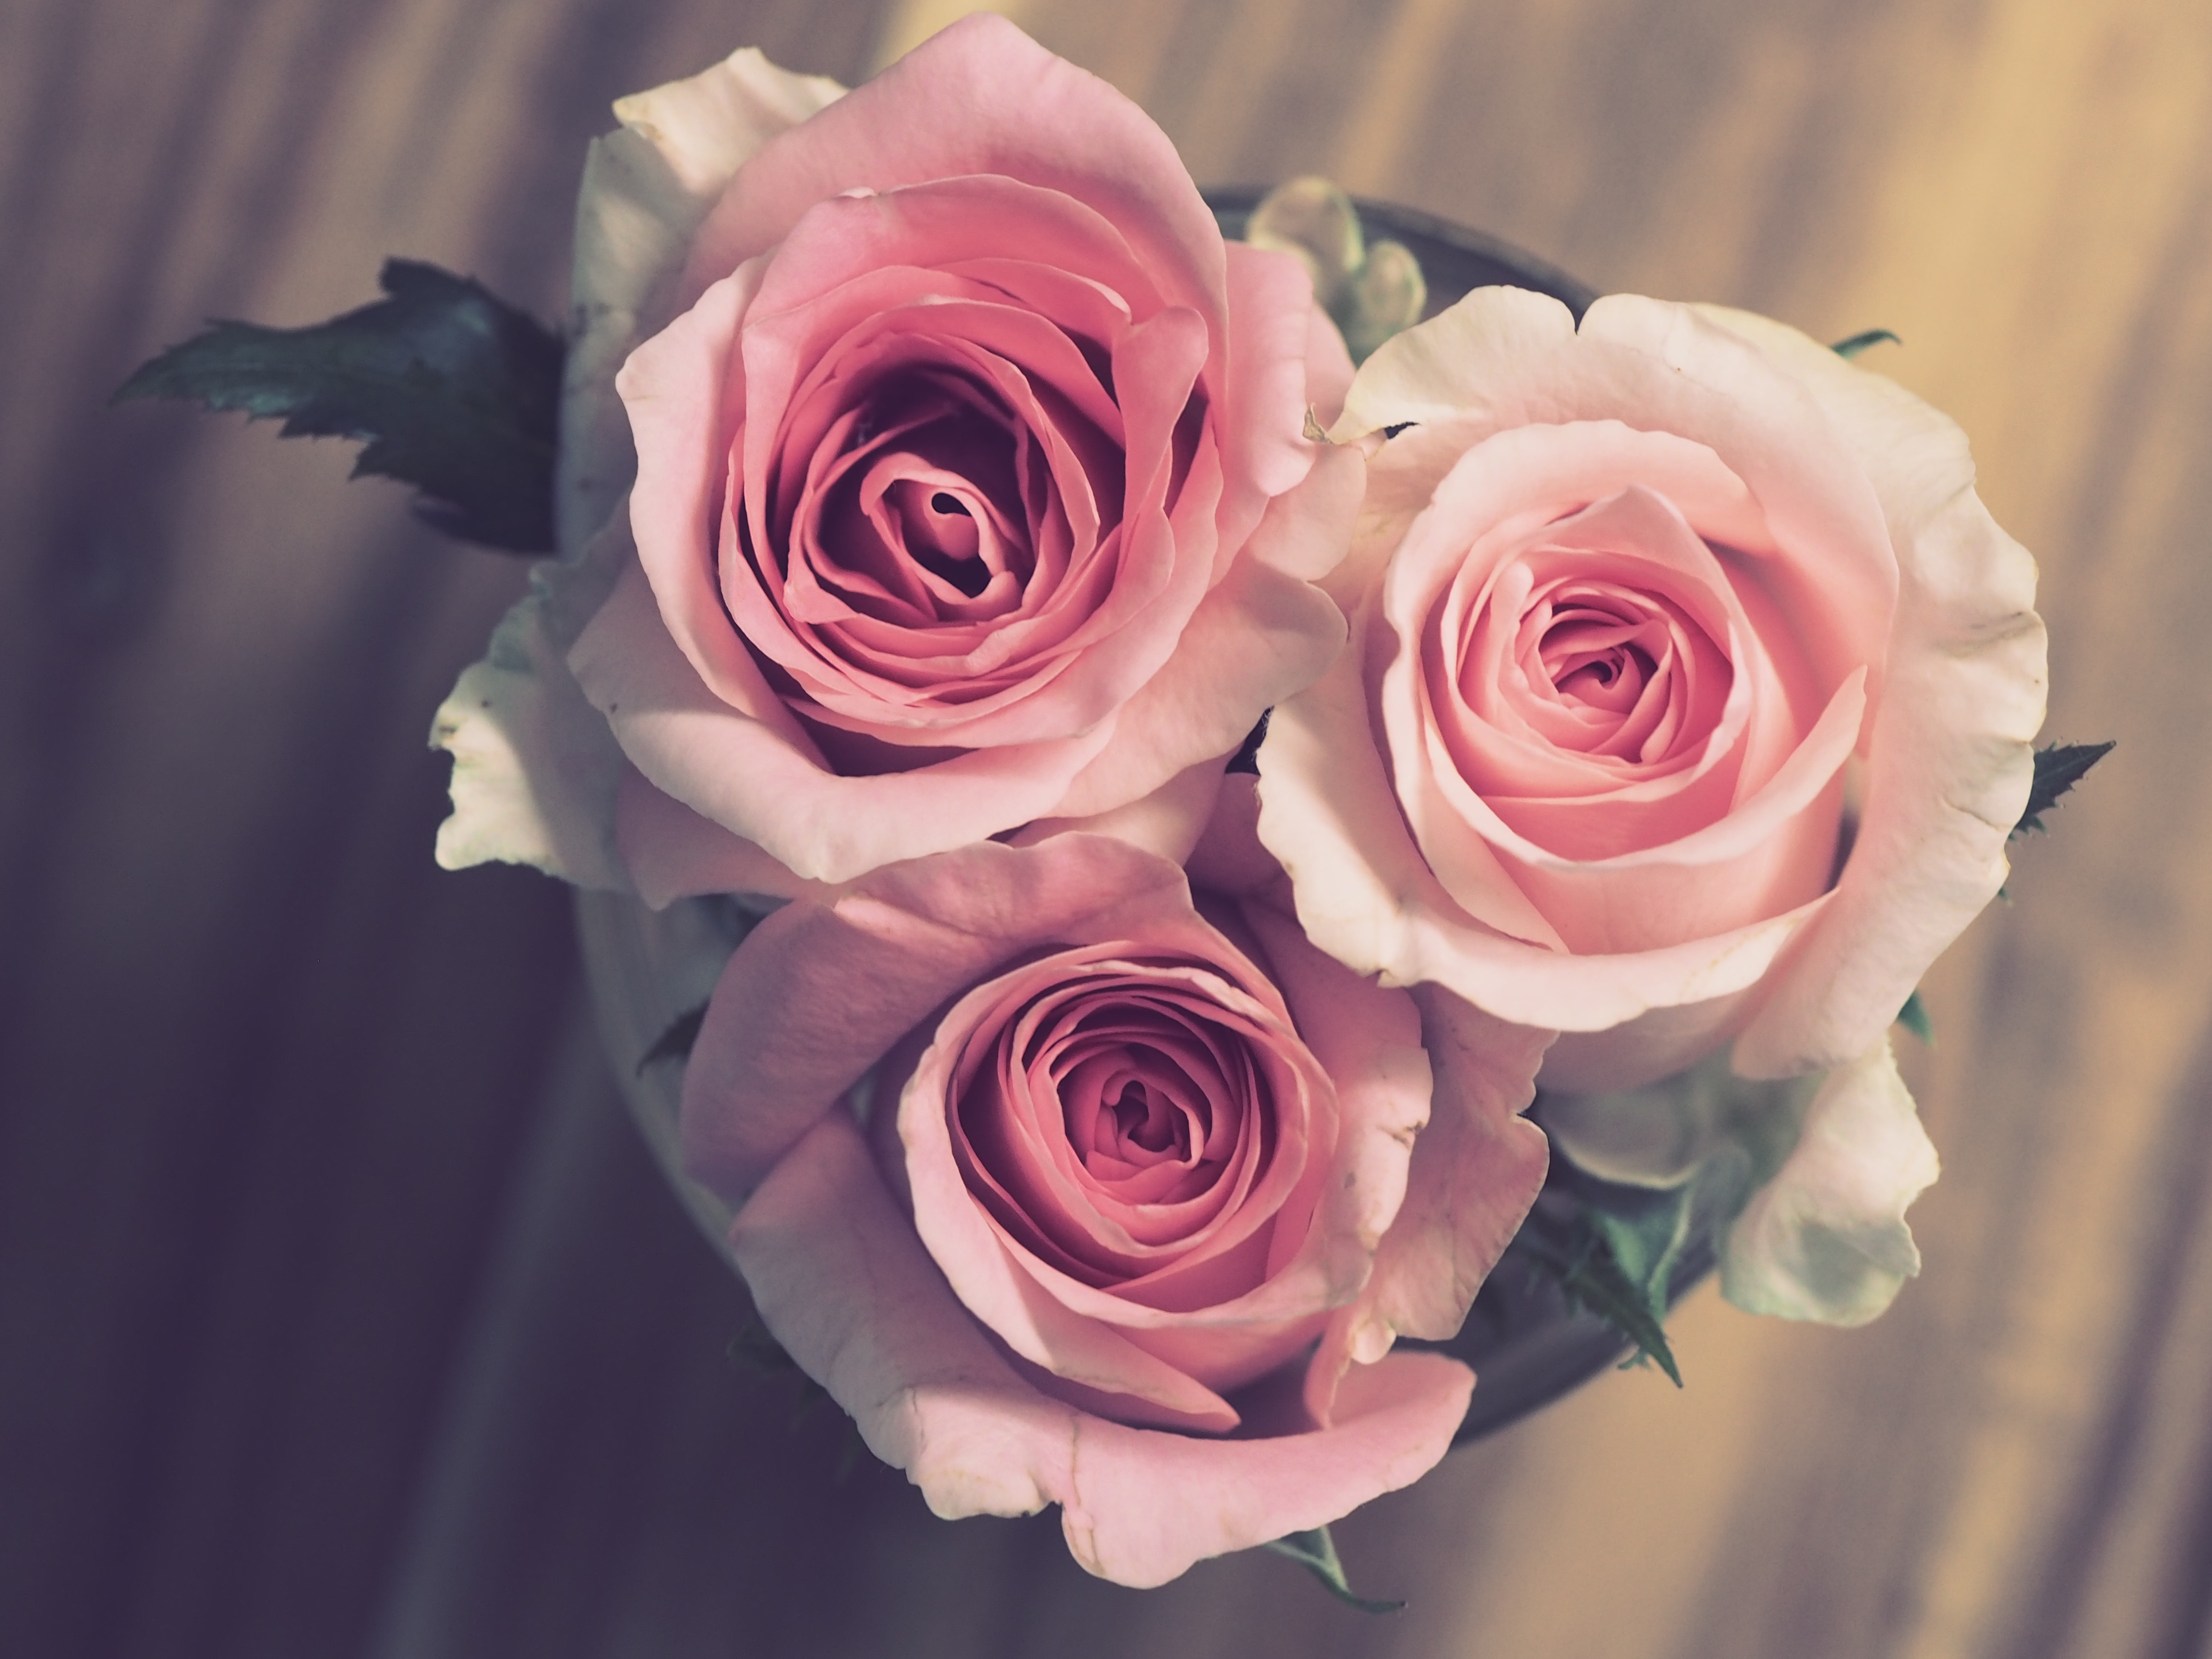 closeup photo of two pink roses